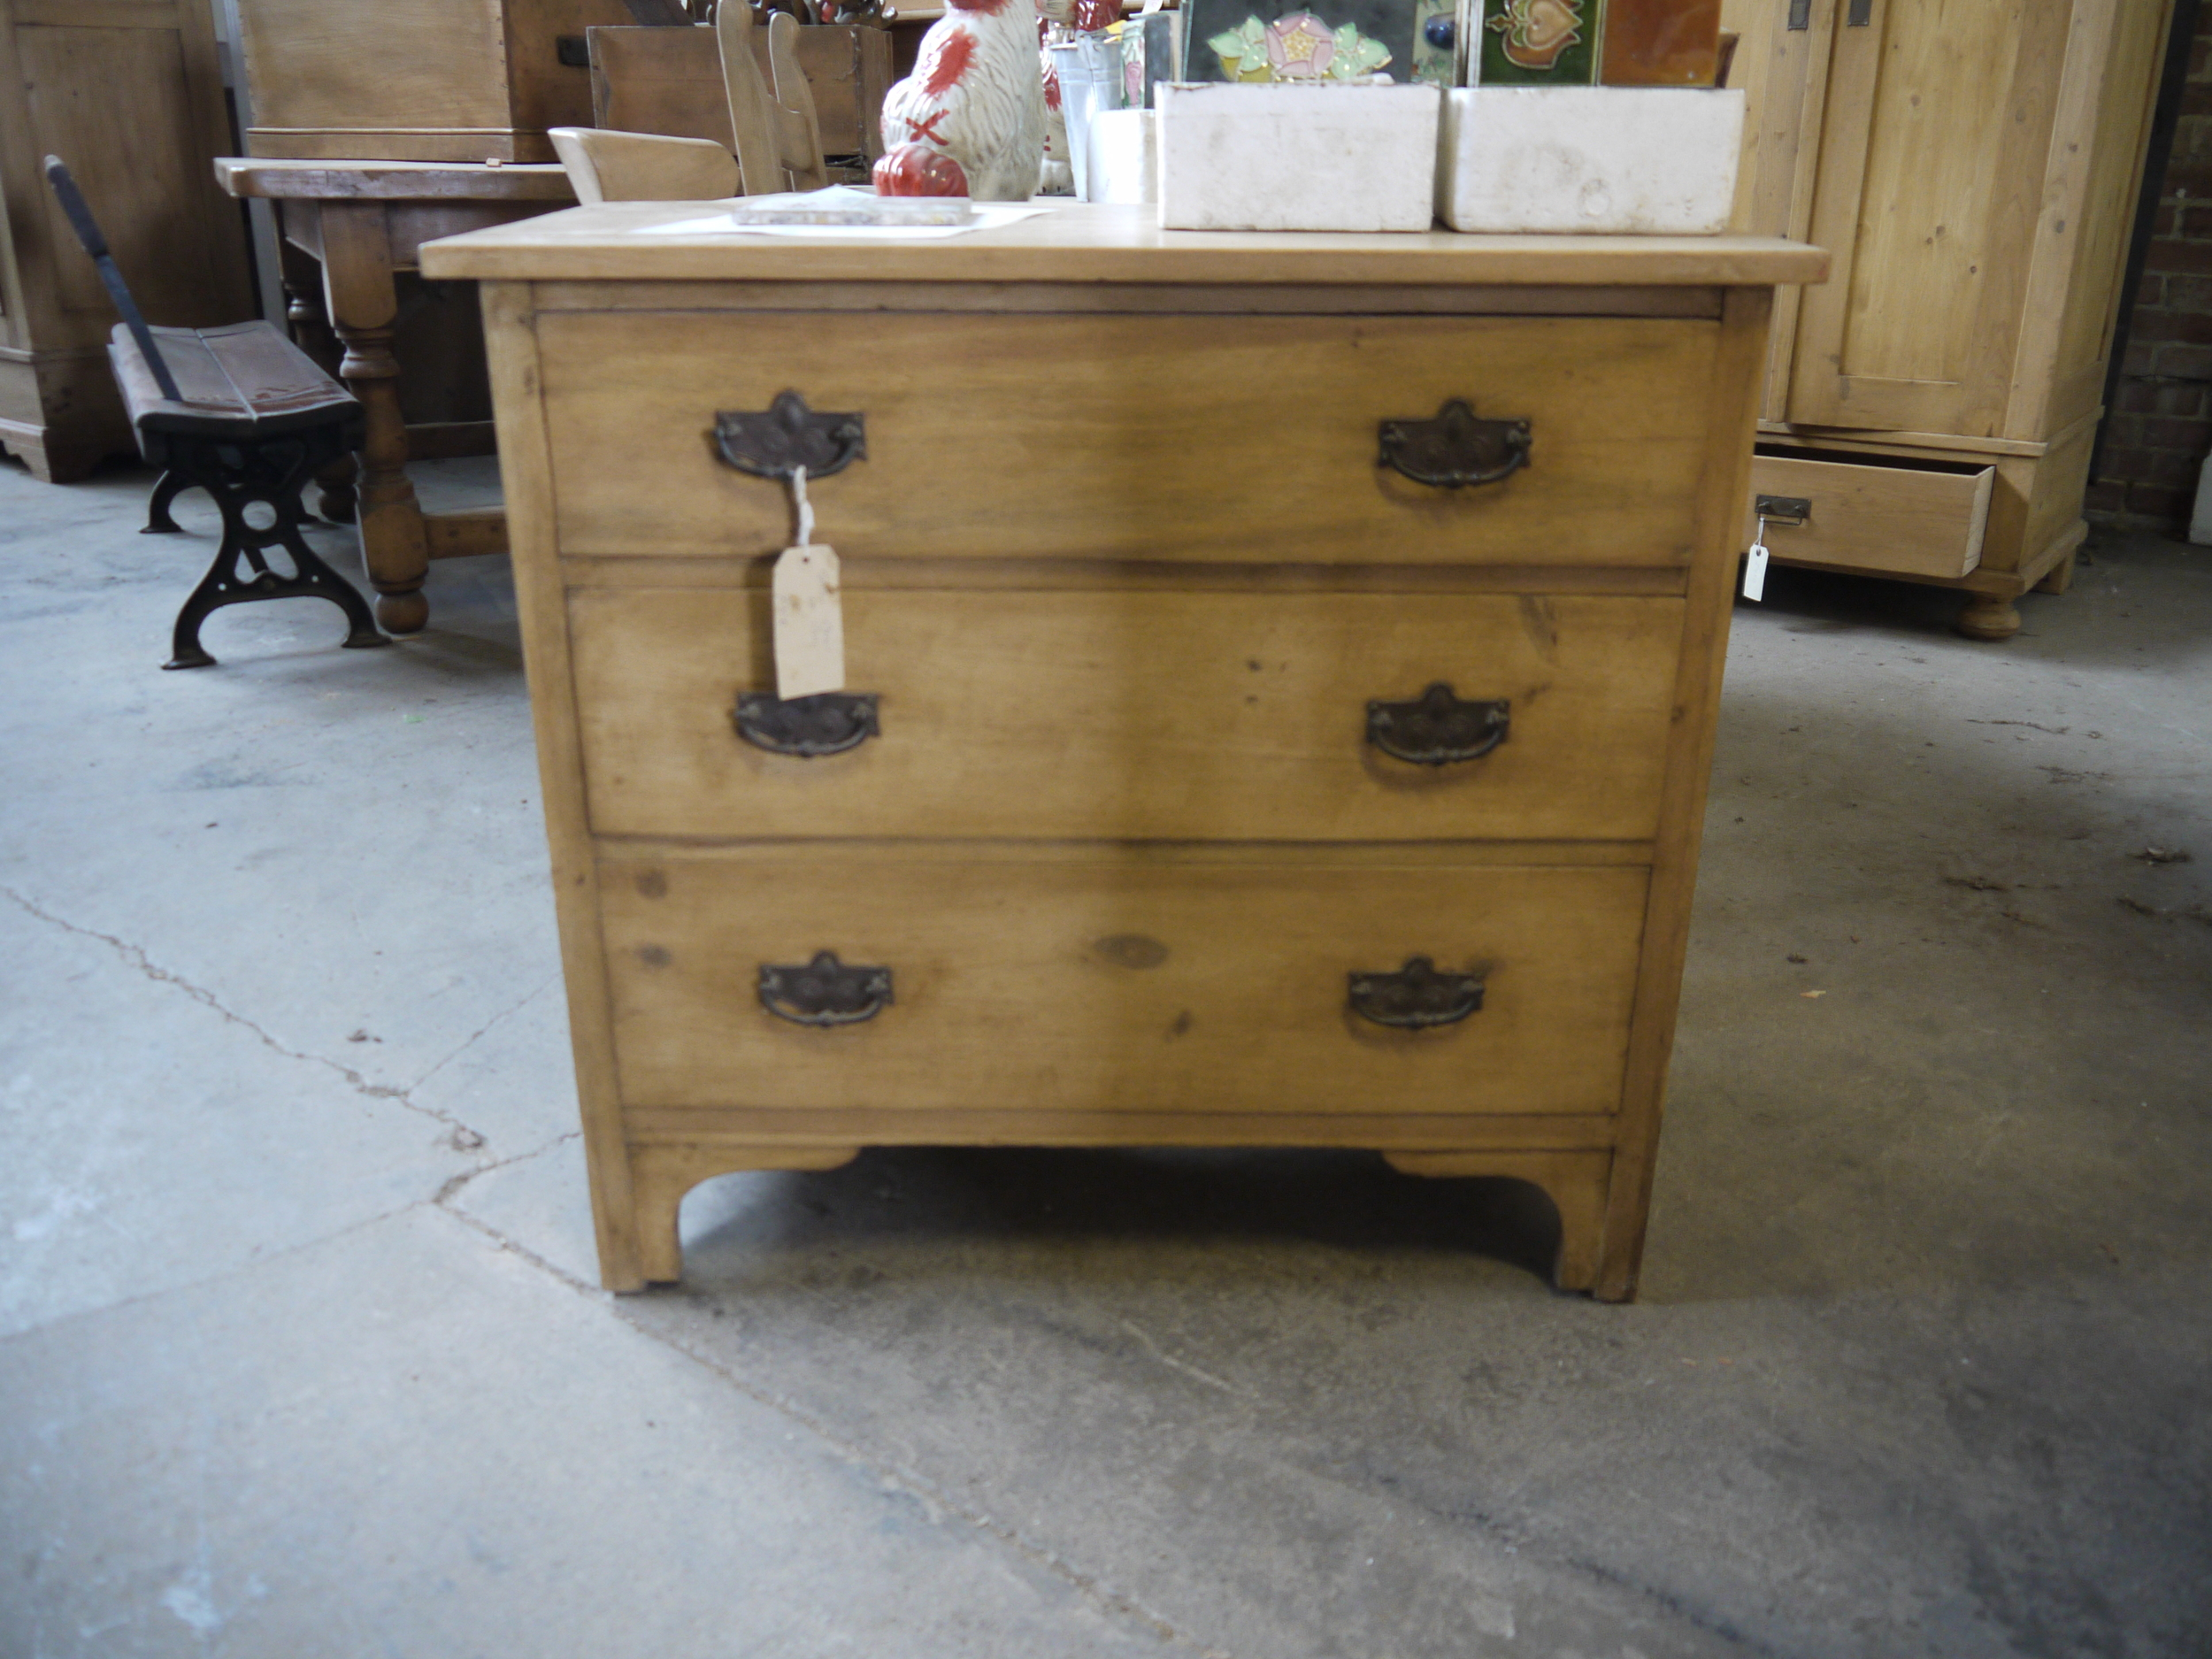 61 - 1900 pine chest of drawers